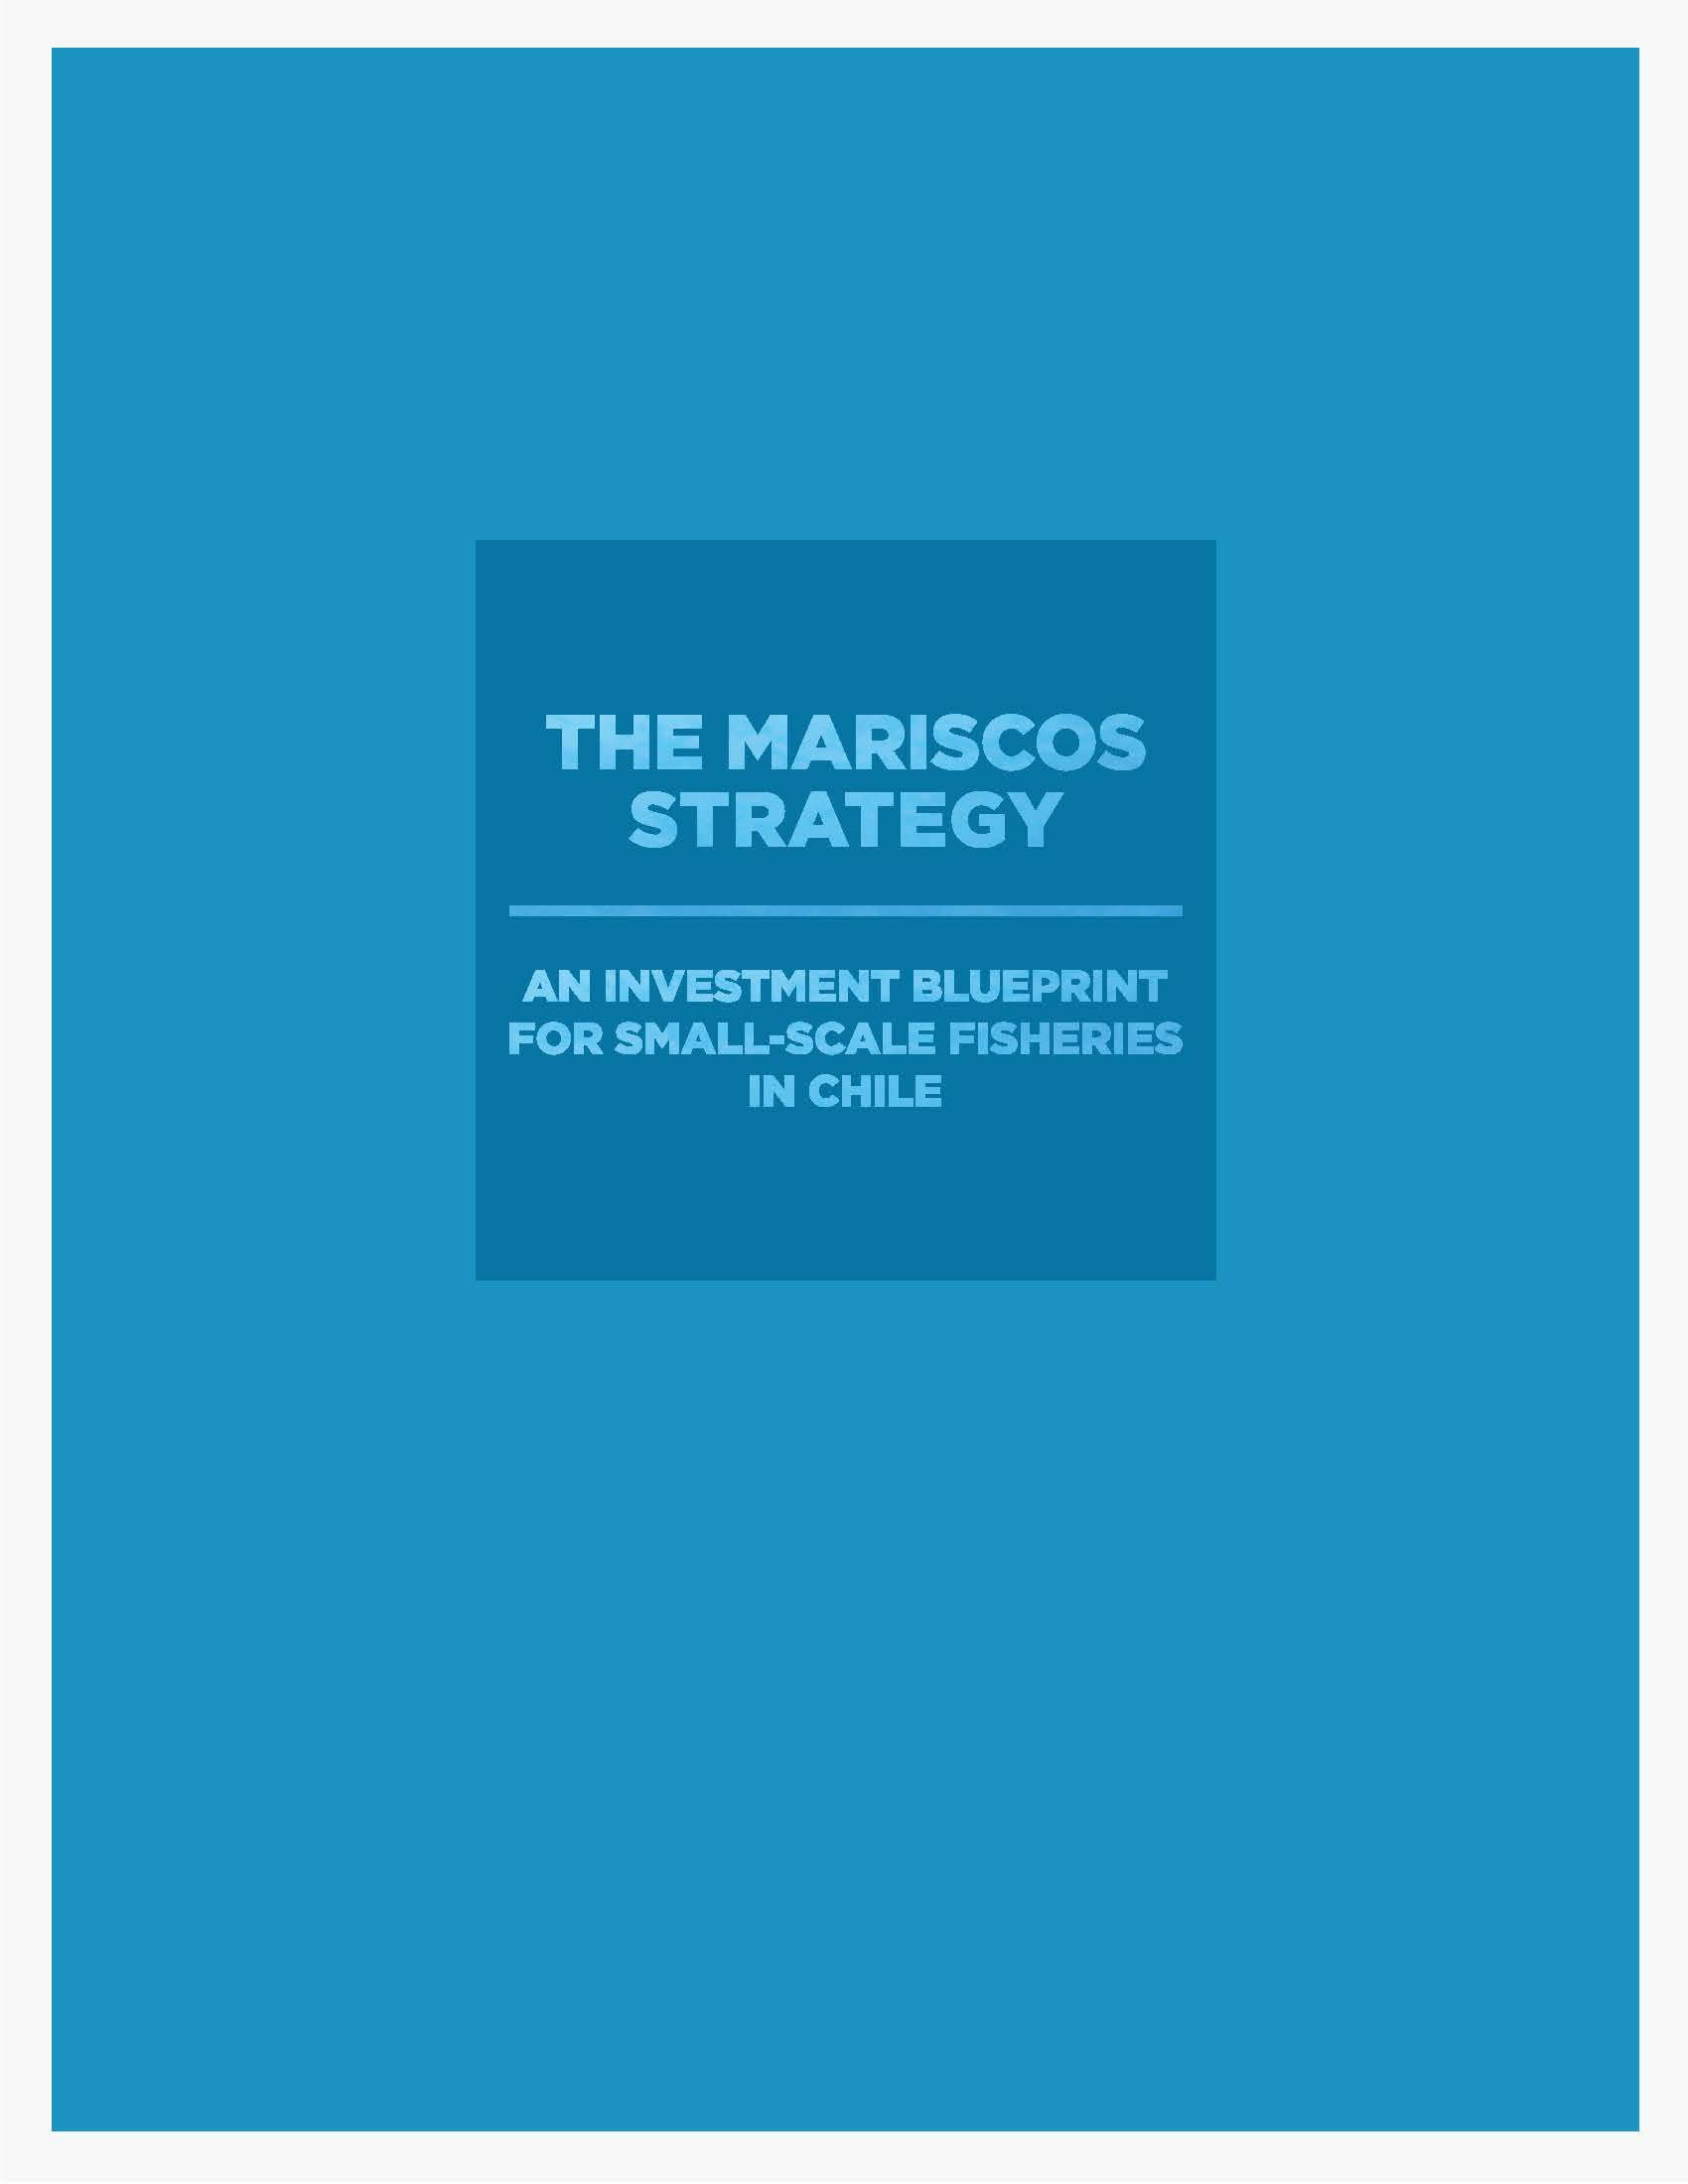 The Mariscos Strategy : An Investment Blueprint for Small-Scale Fisheries in Chile